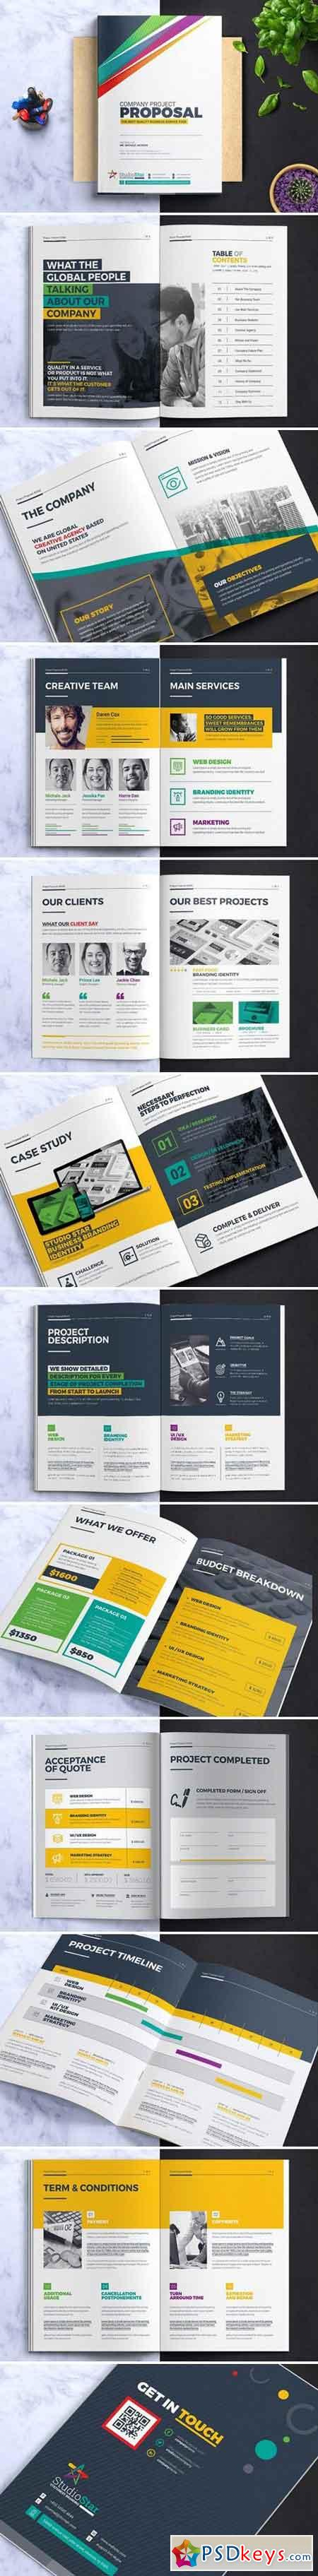 Project Proposal Template 2143268